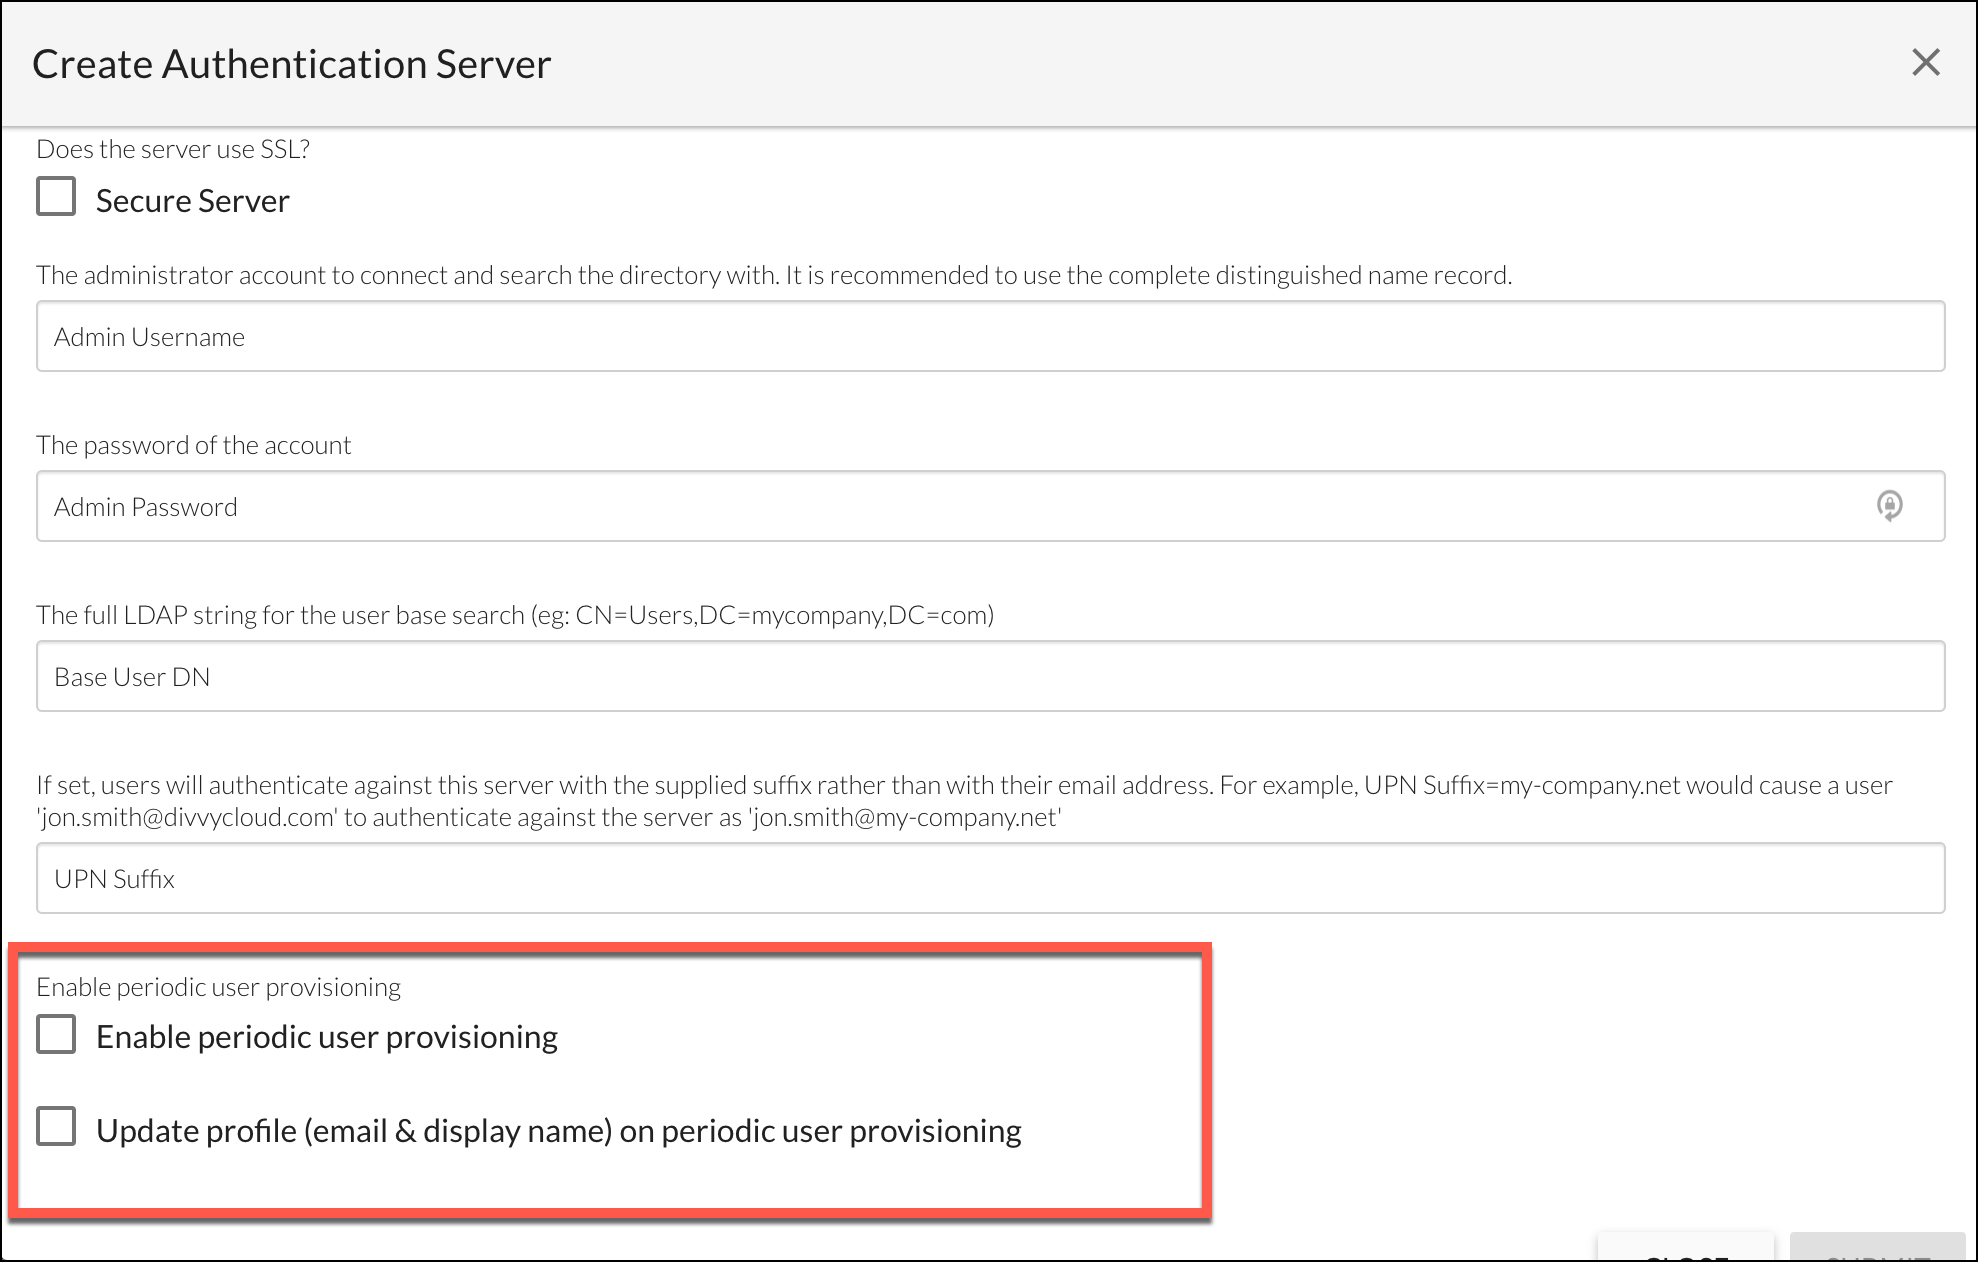 Create Authentication Server Form - Active Directory: Enabling JIT